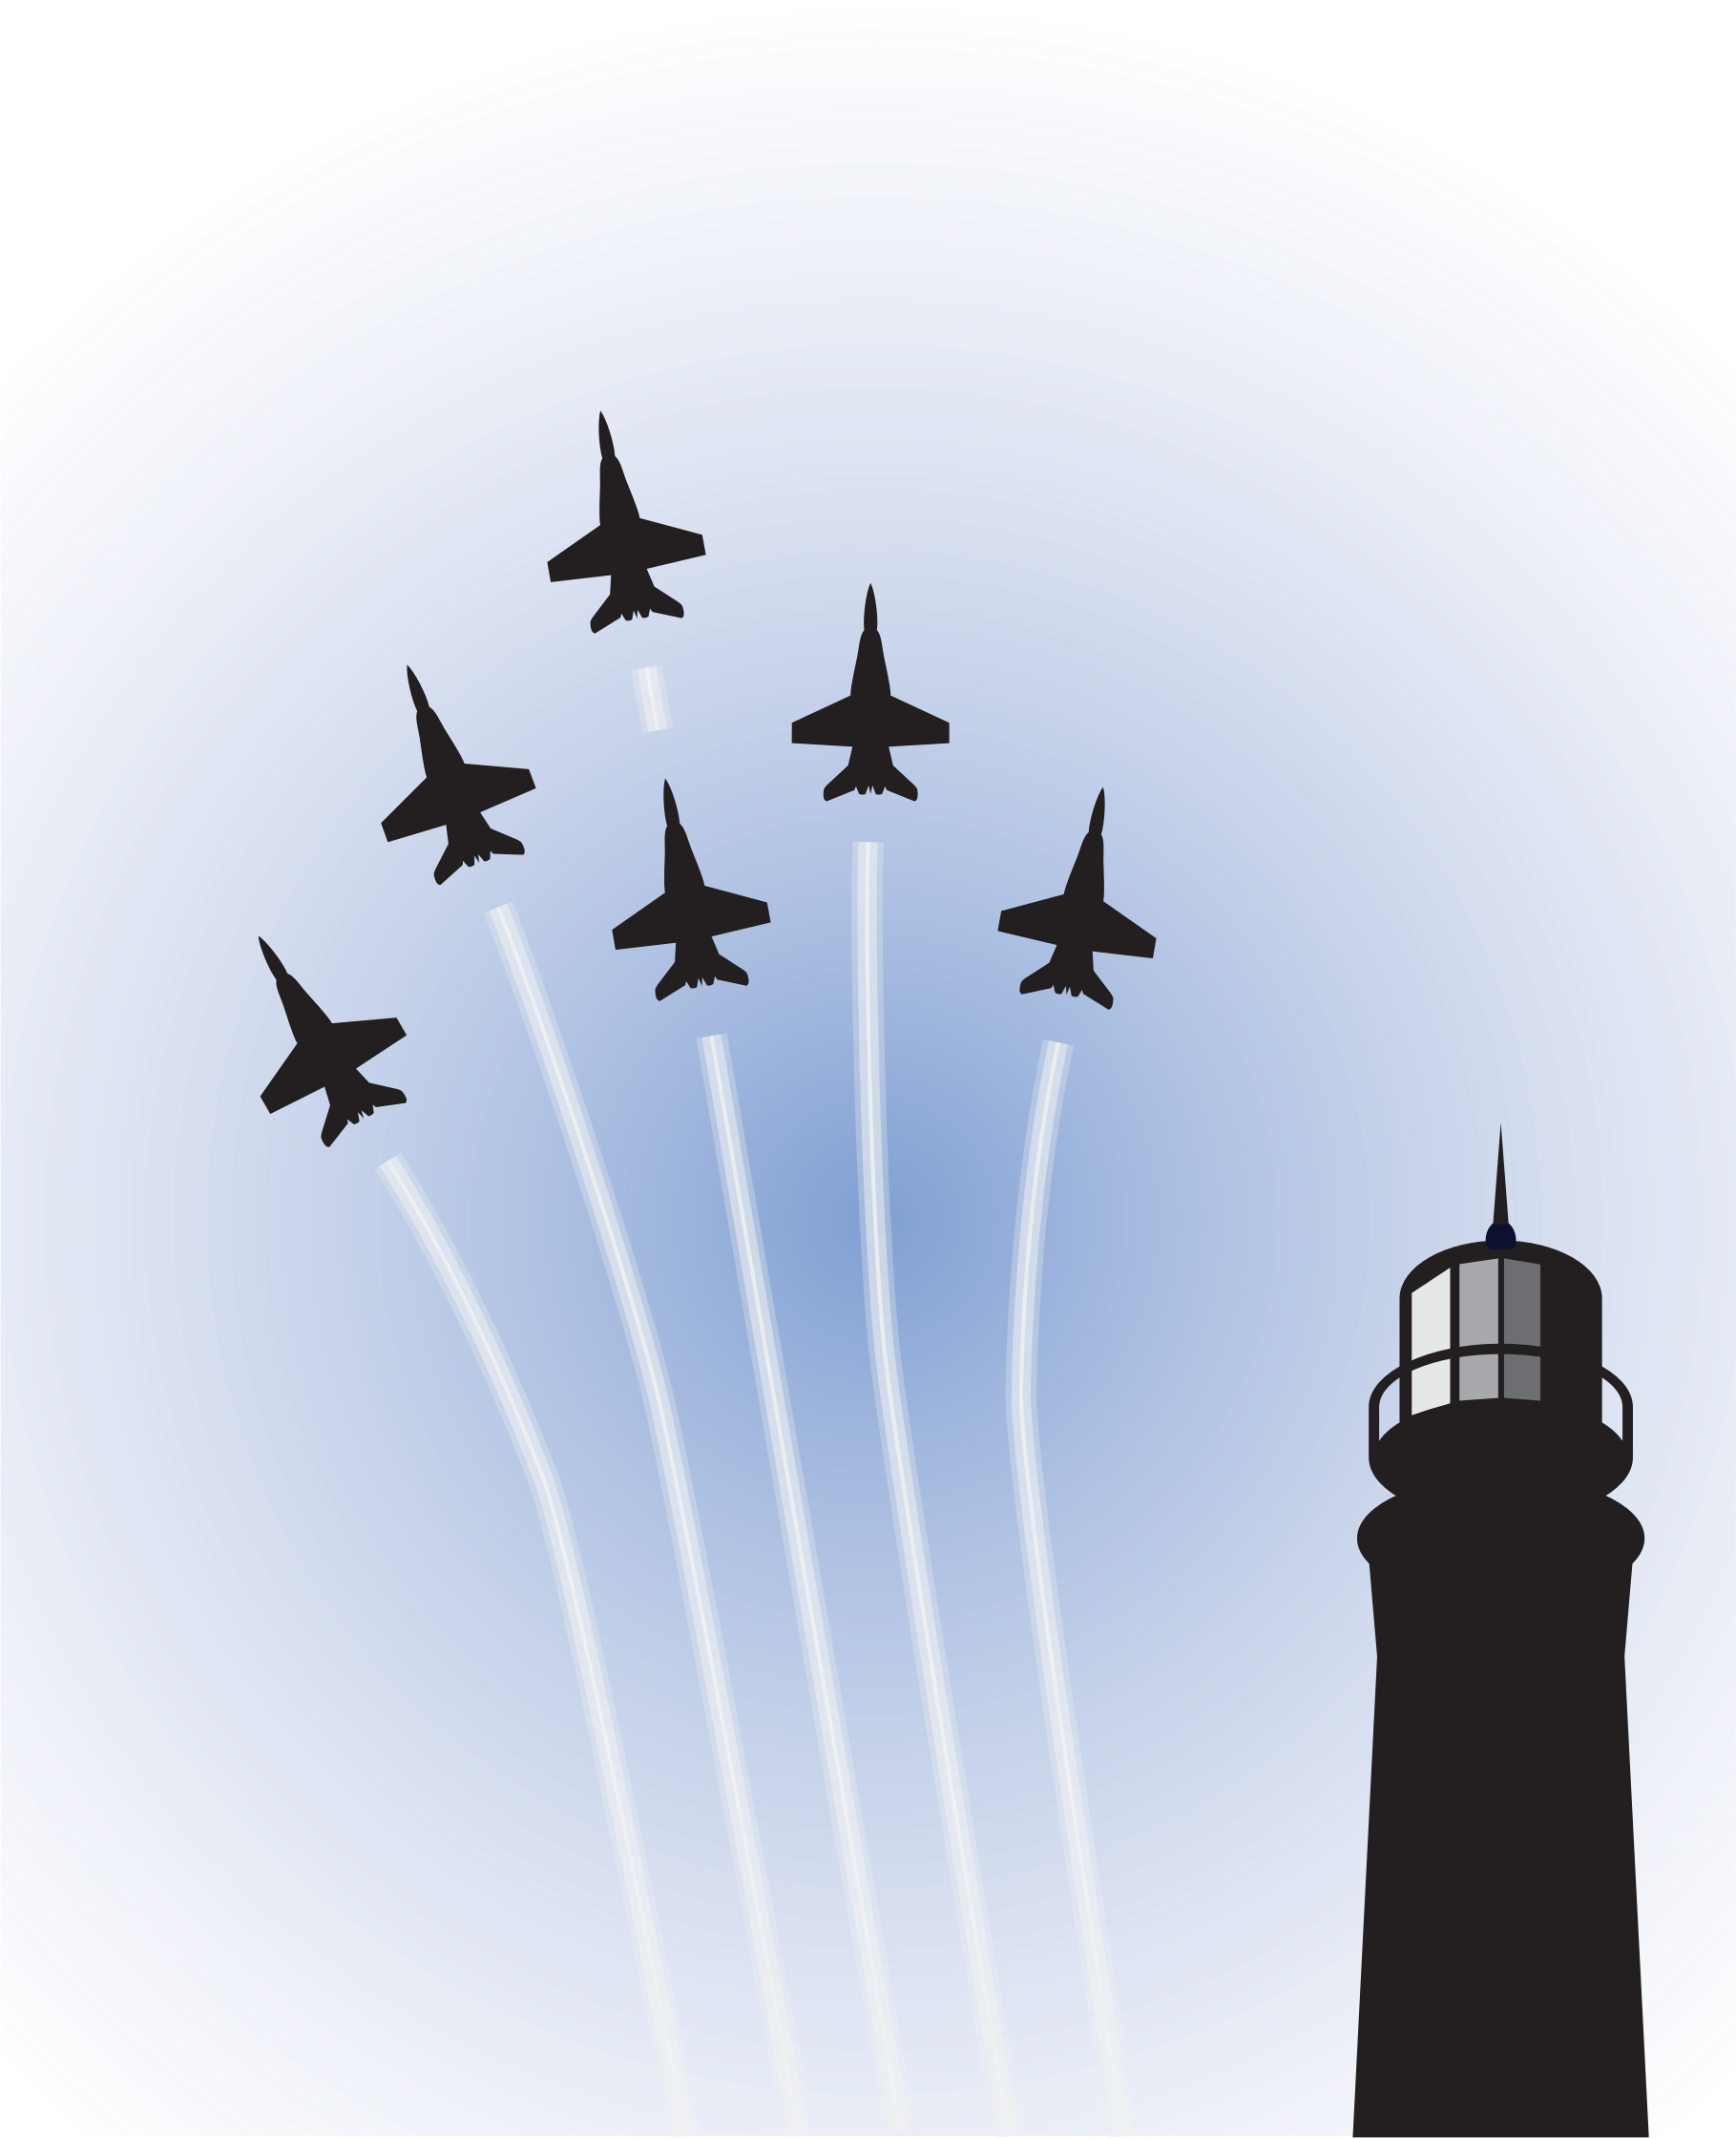 Blue light house clipart picture black and white download Clipart - Blue Angels over Lighthouse picture black and white download